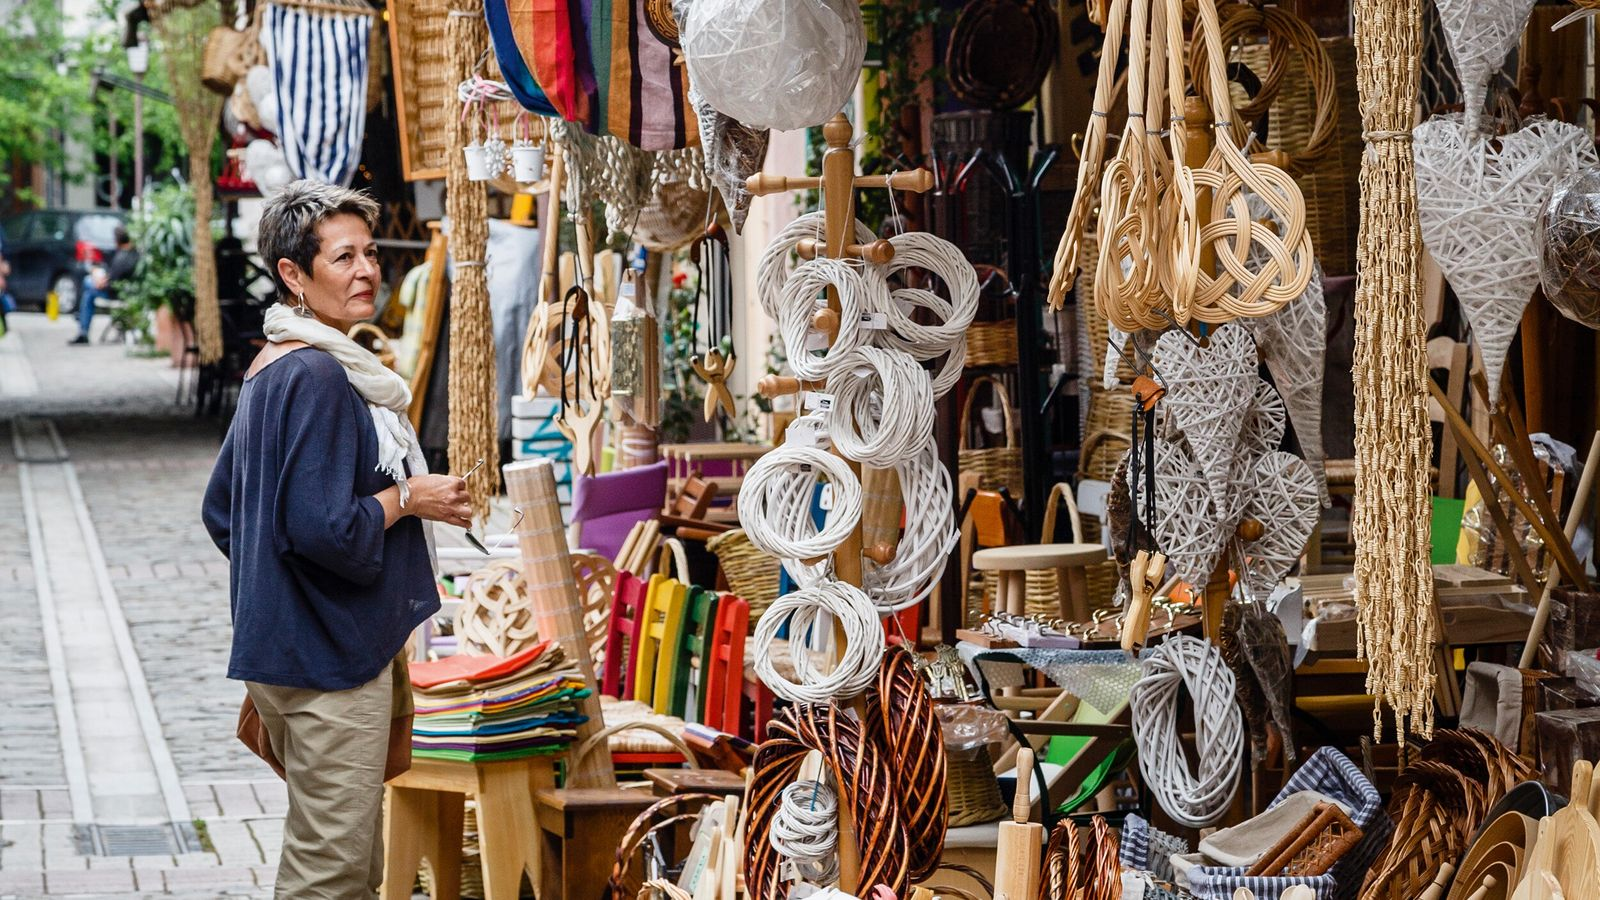 Wickerwork stalls in Athonos Square in Thessaloniki.